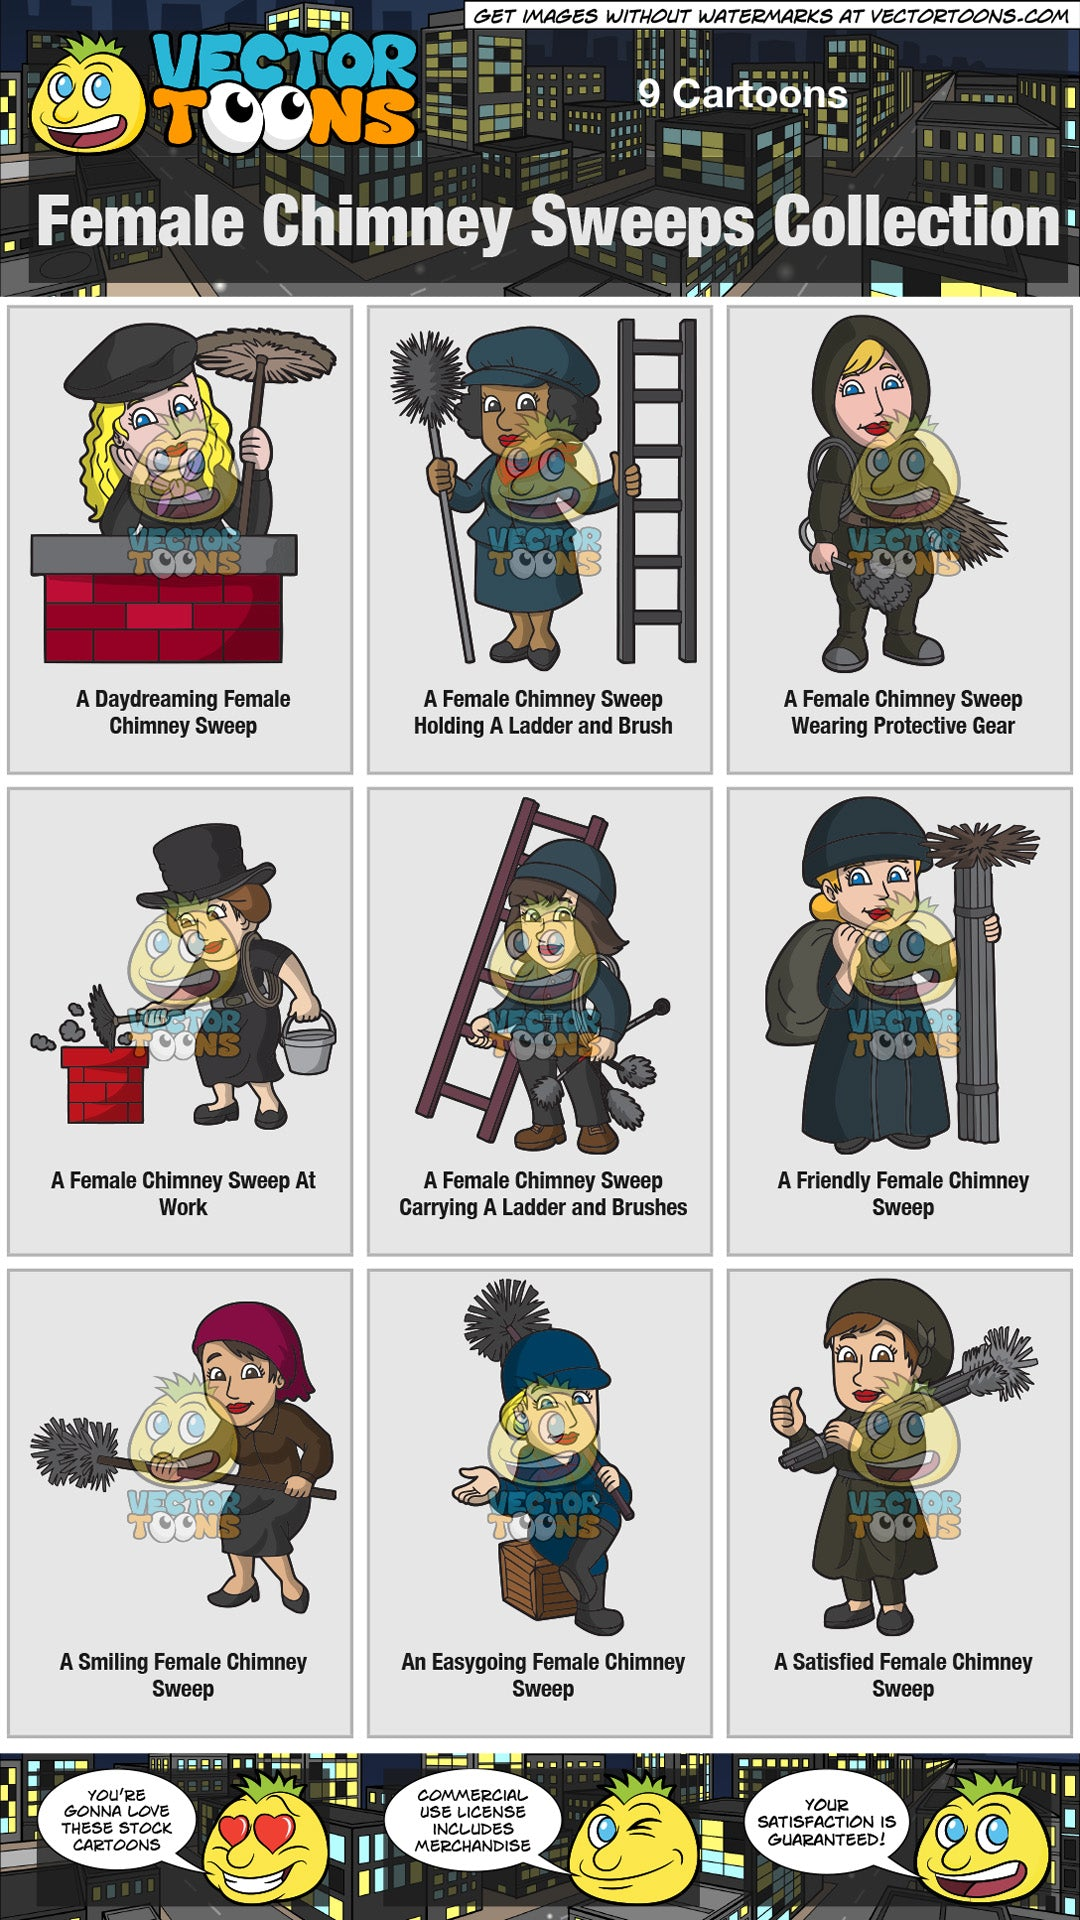 Female Chimney Sweeps Collection